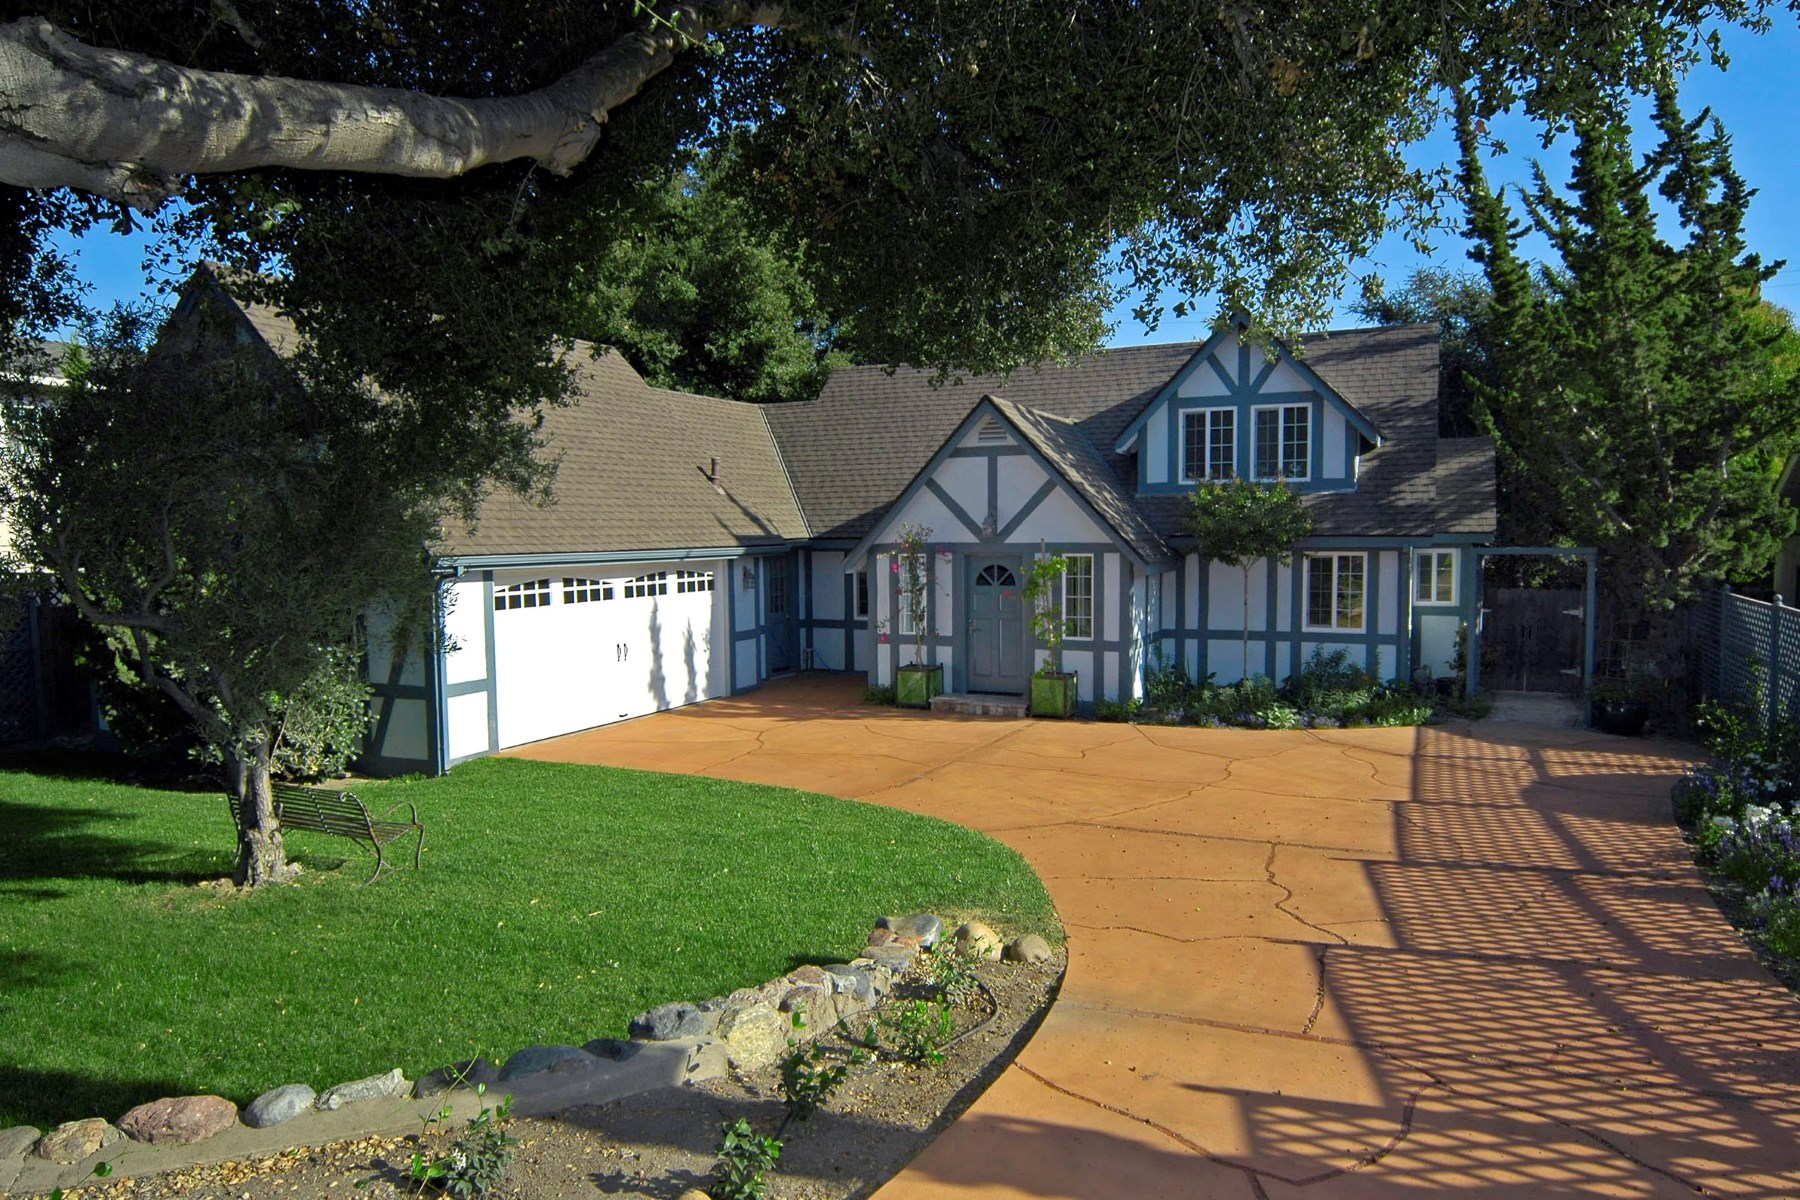 Single Family Home for Sale at Charming Downtown Cottage 1628 Laurel Avenue Solvang, California 93463 United States